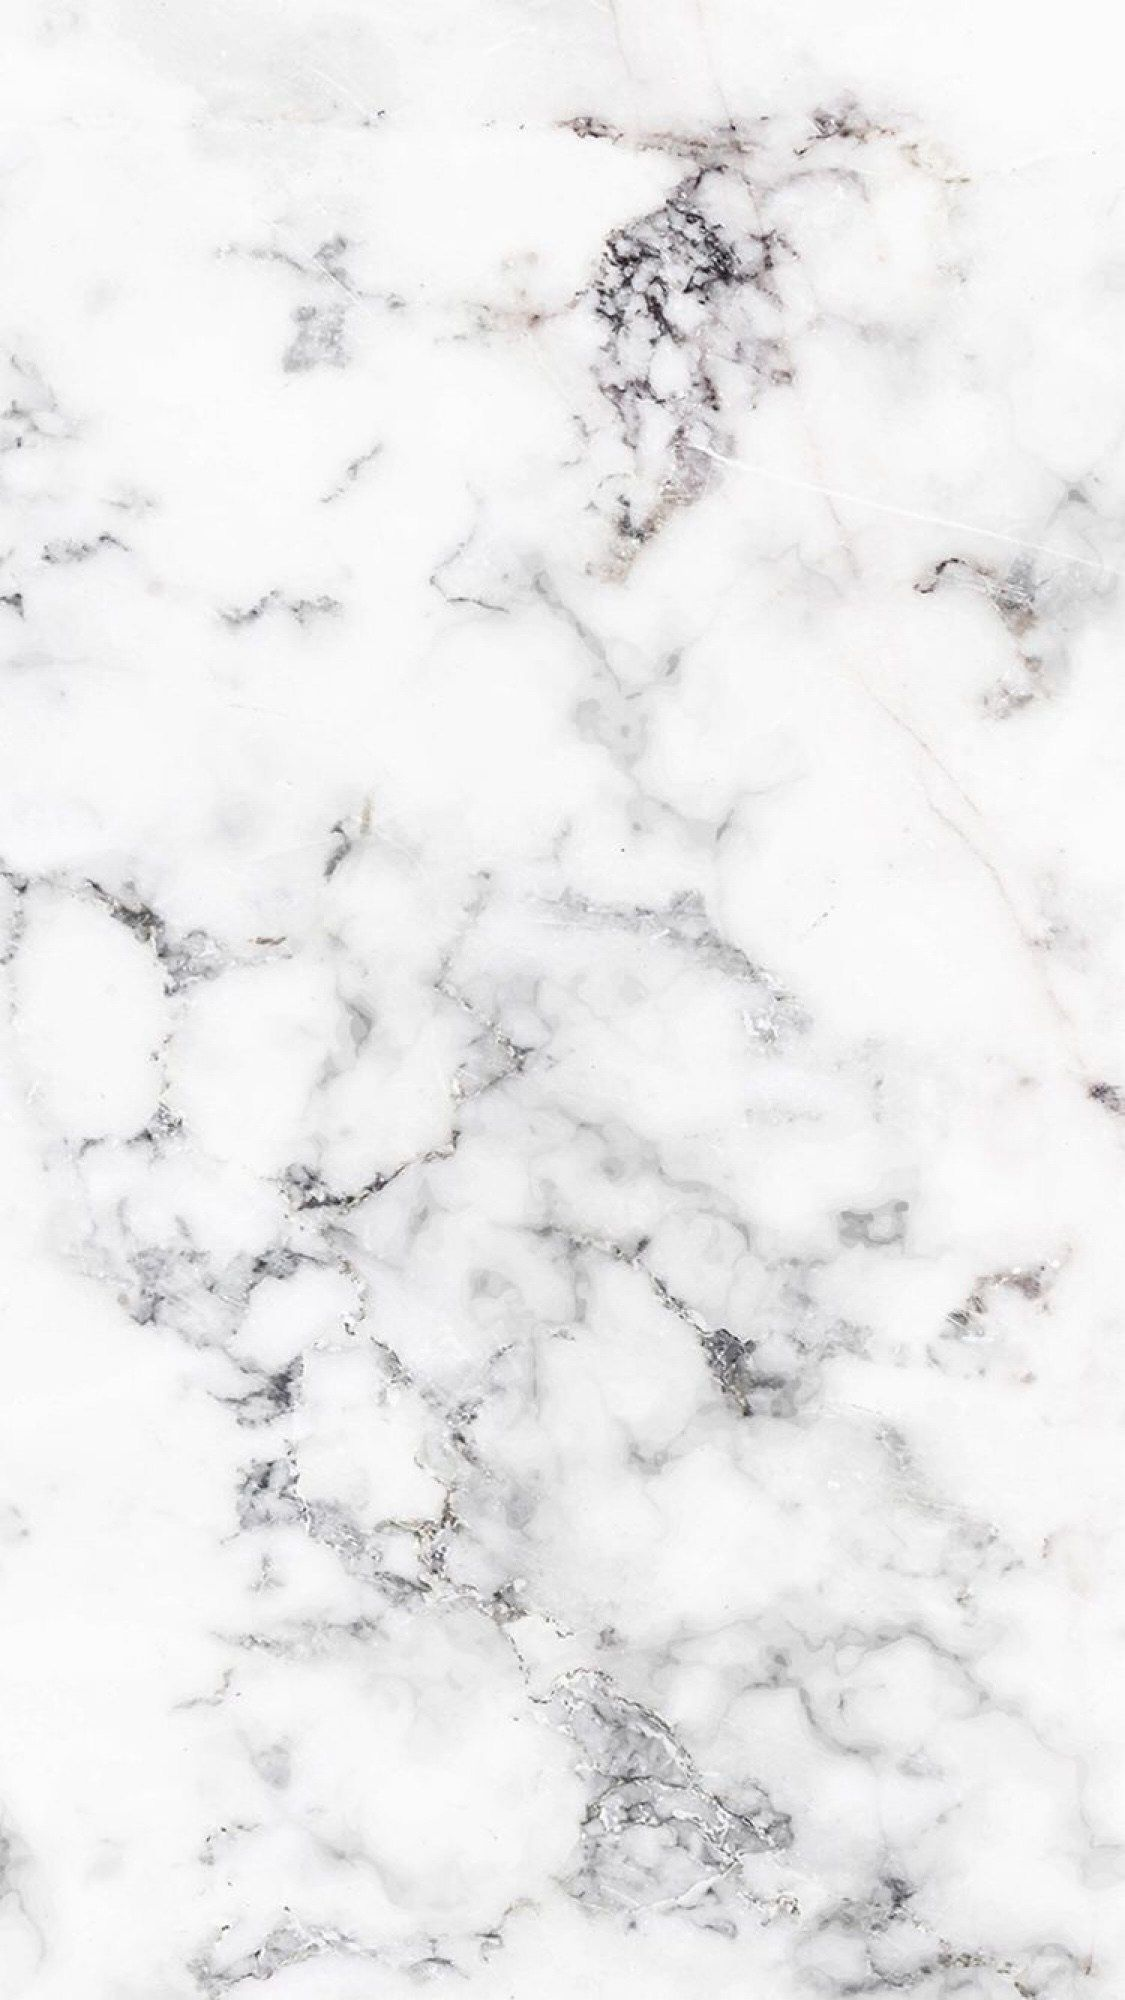 White Monochrome Black And White Marble Marble Iphone Wallpaper Iphone Wallpaper Pinterest Iphone Background Wallpaper